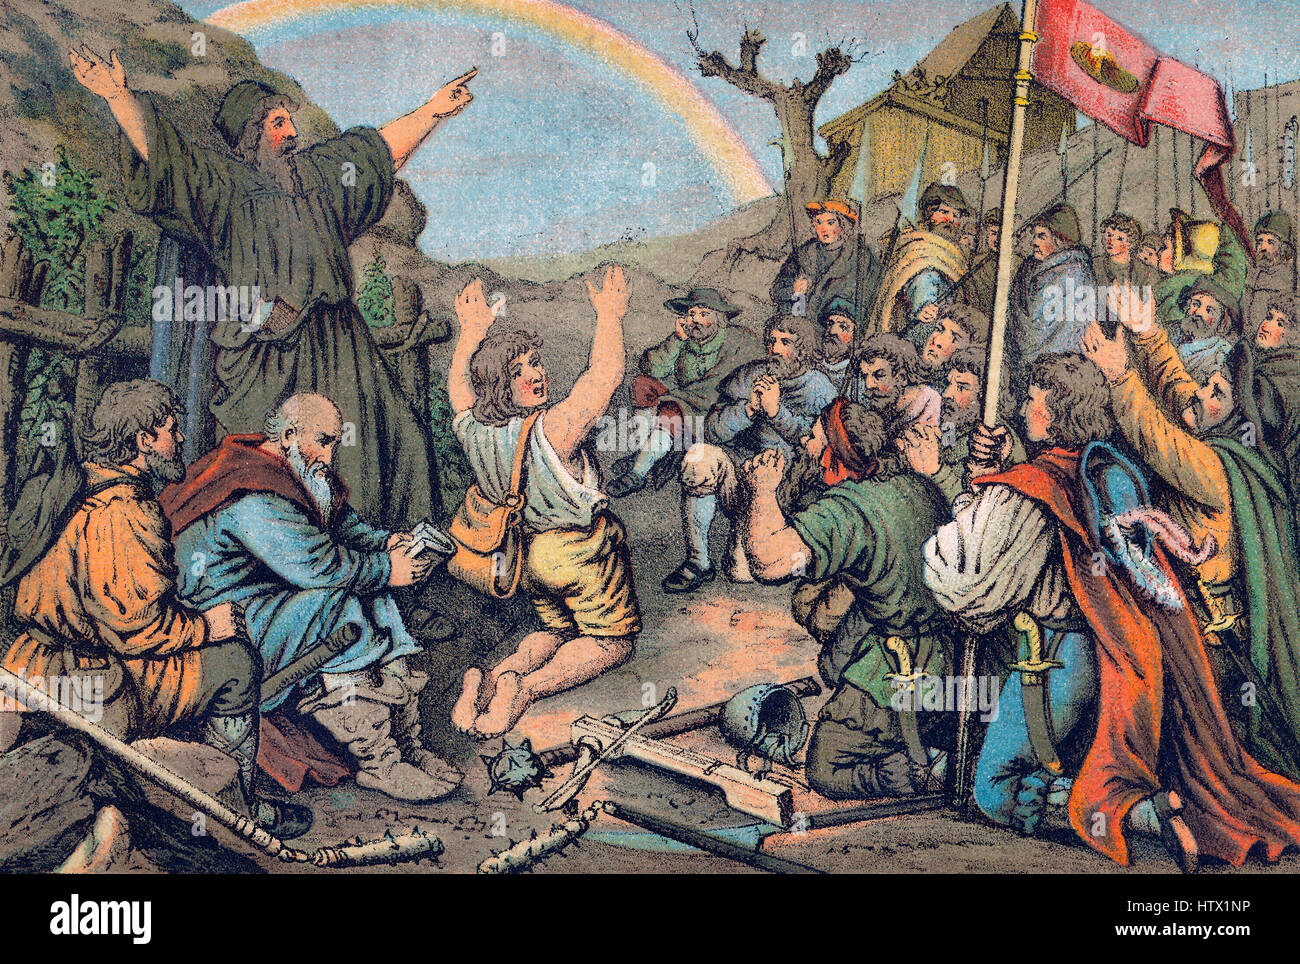 the peasant's revolt in the german Suppression of the rebellion by the german aristocracy was swift and violent, leaving over 70,000 german peasants dead the rebellion targeted the social and political oppression of the peasantry in the early 16th century.